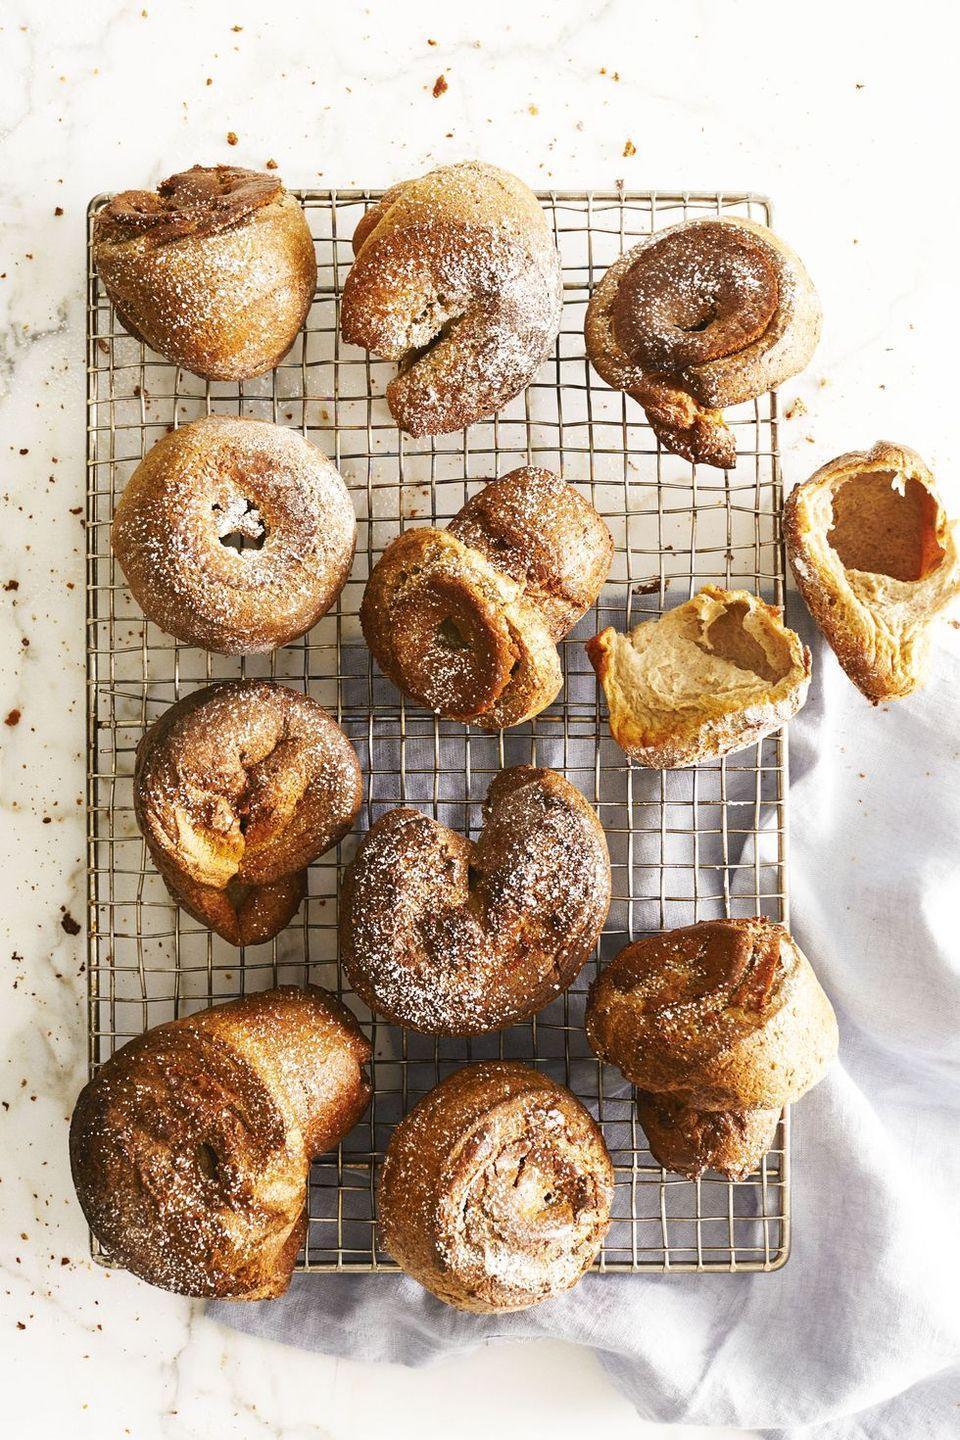 "<p>At <em>GH</em>, we know a thing or two about <a href=""https://www.goodhousekeeping.com/food-recipes/g2882/how-to-make-popovers/"" rel=""nofollow noopener"" target=""_blank"" data-ylk=""slk:popovers"" class=""link rapid-noclick-resp"">popovers</a> — we've been perfecting our recipe for decades! Here, we added a pinch of pumpkin pie spice to give the pastry some fall flair.</p><p><em><a href=""https://www.goodhousekeeping.com/food-recipes/dessert/a40396/pumpkin-popovers-recipe/"" rel=""nofollow noopener"" target=""_blank"" data-ylk=""slk:Get the recipe for Pumpkin Popovers »"" class=""link rapid-noclick-resp"">Get the recipe for Pumpkin Popovers »</a></em></p>"